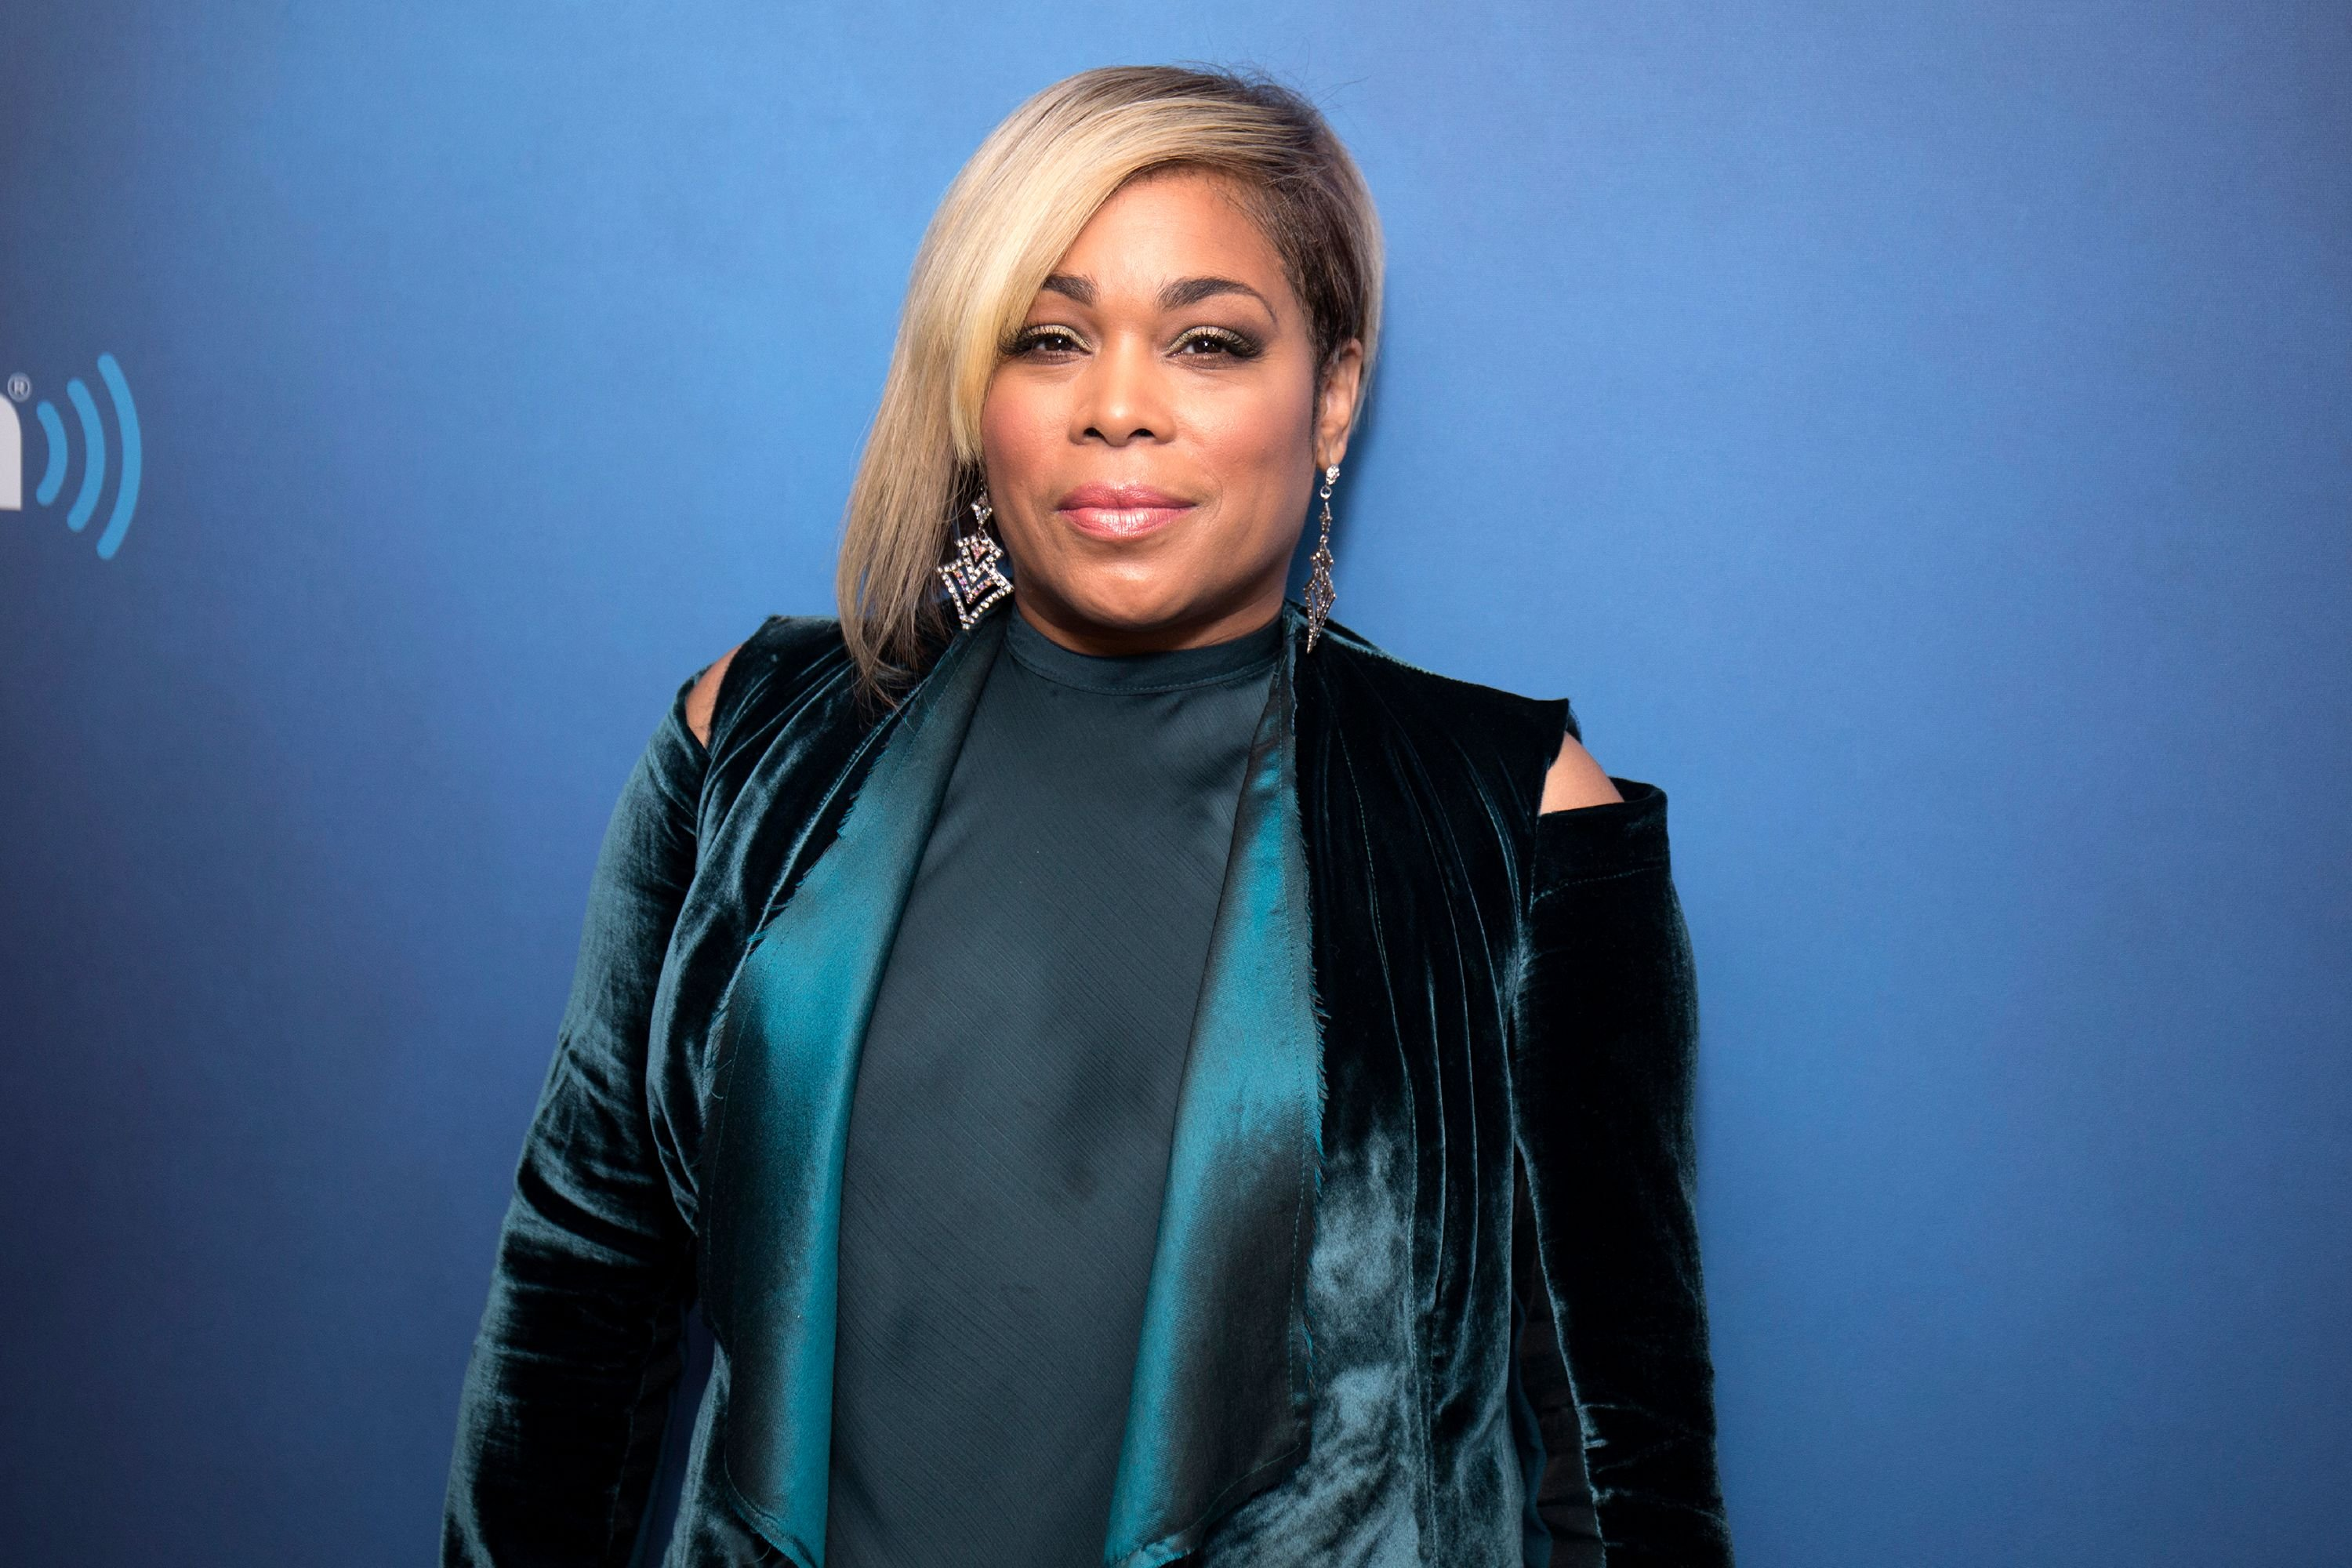 Tionne 'T-Boz' Watkins visits the SiriusXM Studios on September 12, 2017 in New York City. | Photo: Getty Images